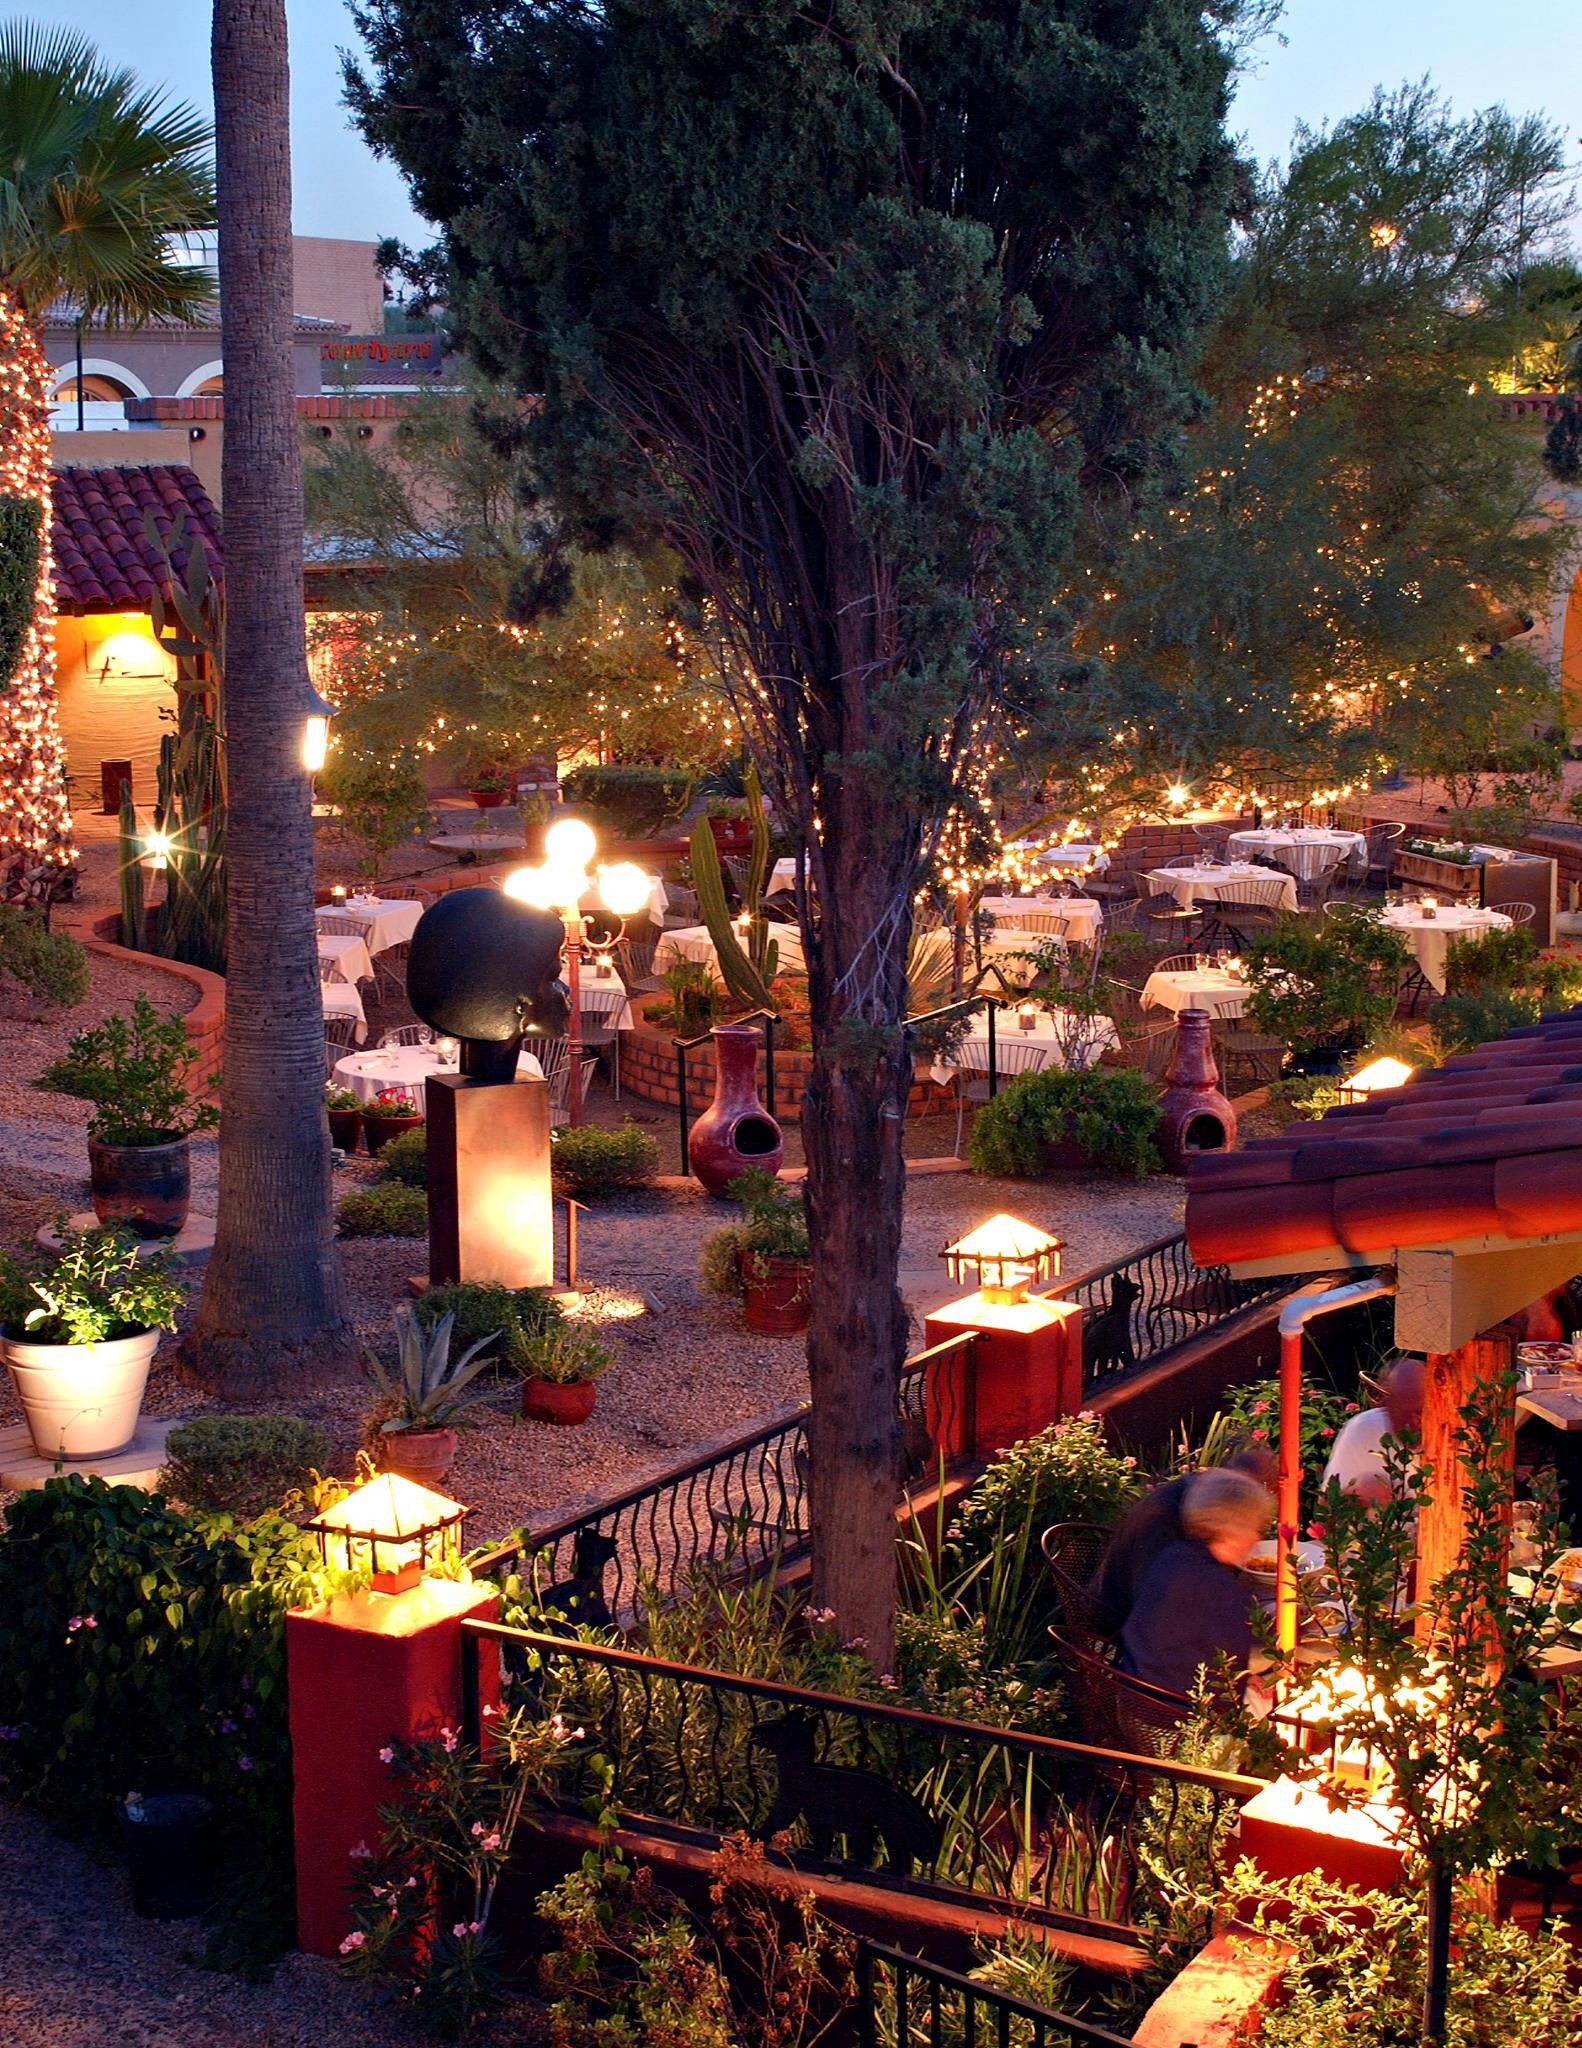 Carefree Station Grill Bar My Favorite Restaurant Here In Az Great Place For Out Of Town Guests Said Previous Pinner